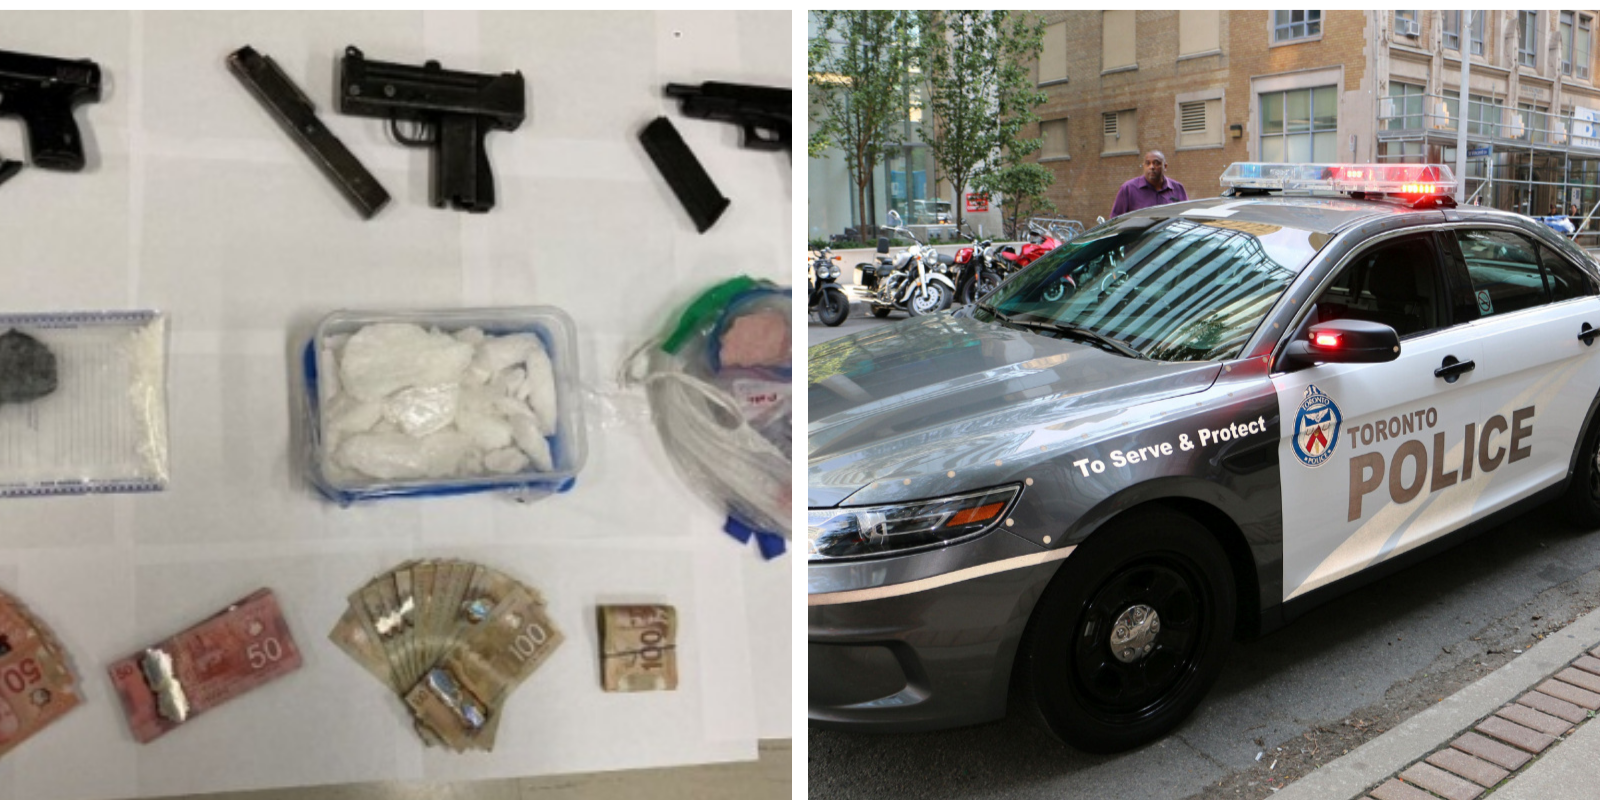 Toronto police seize large cache of drugs and weapons